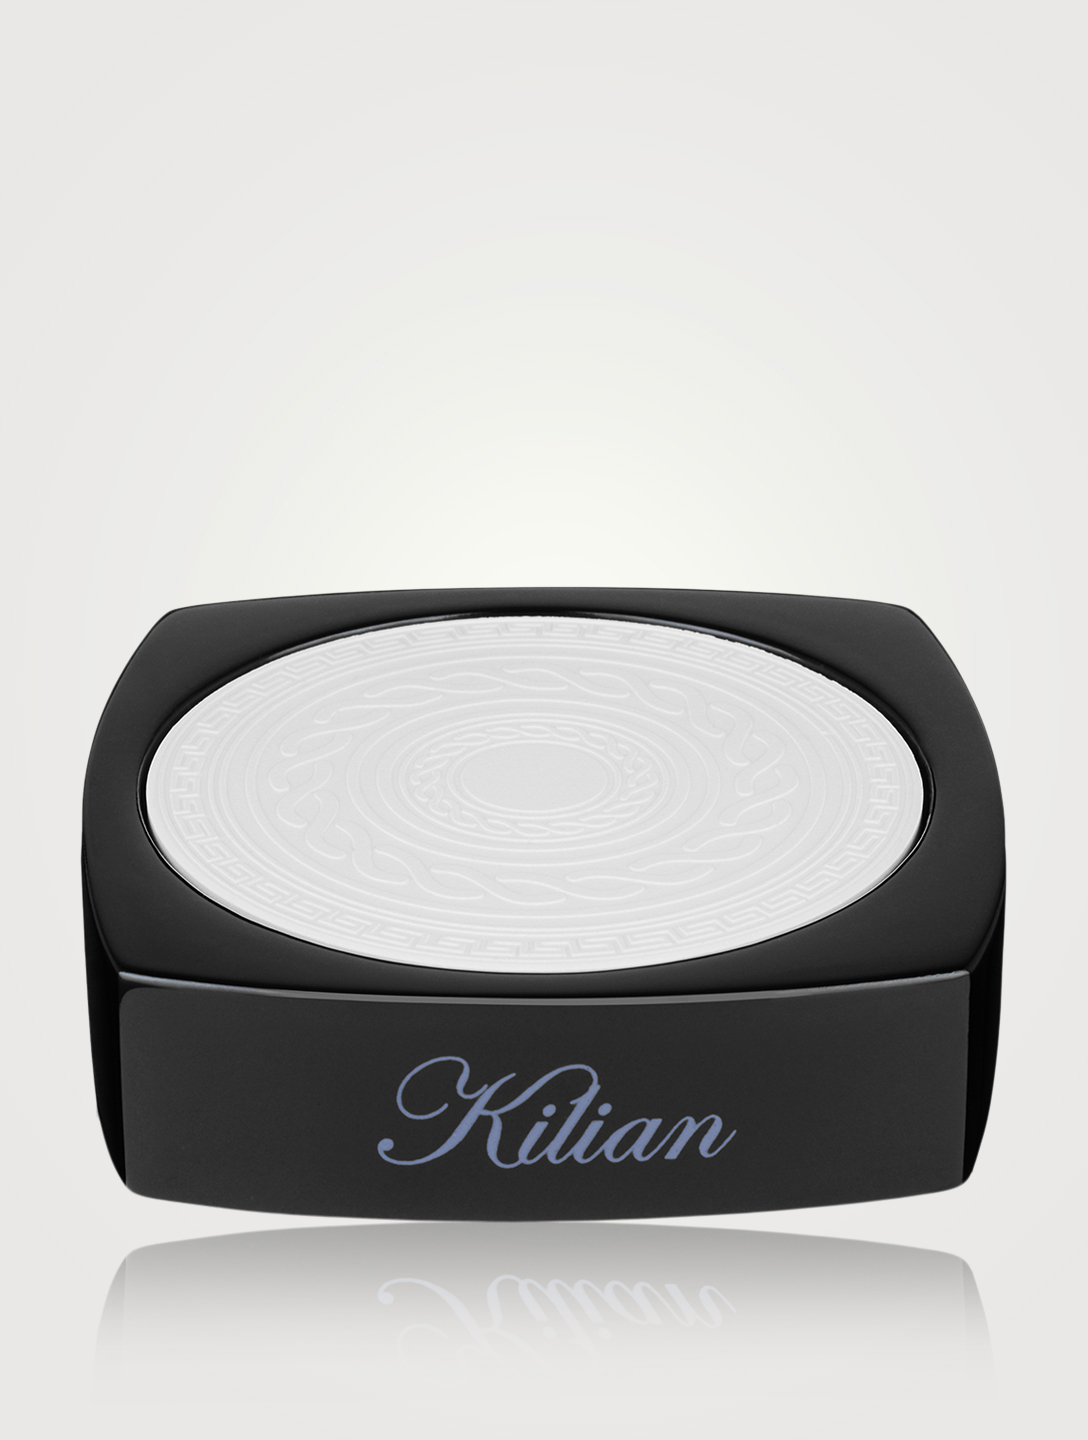 KILIAN French Boudoir Paperweight Designers